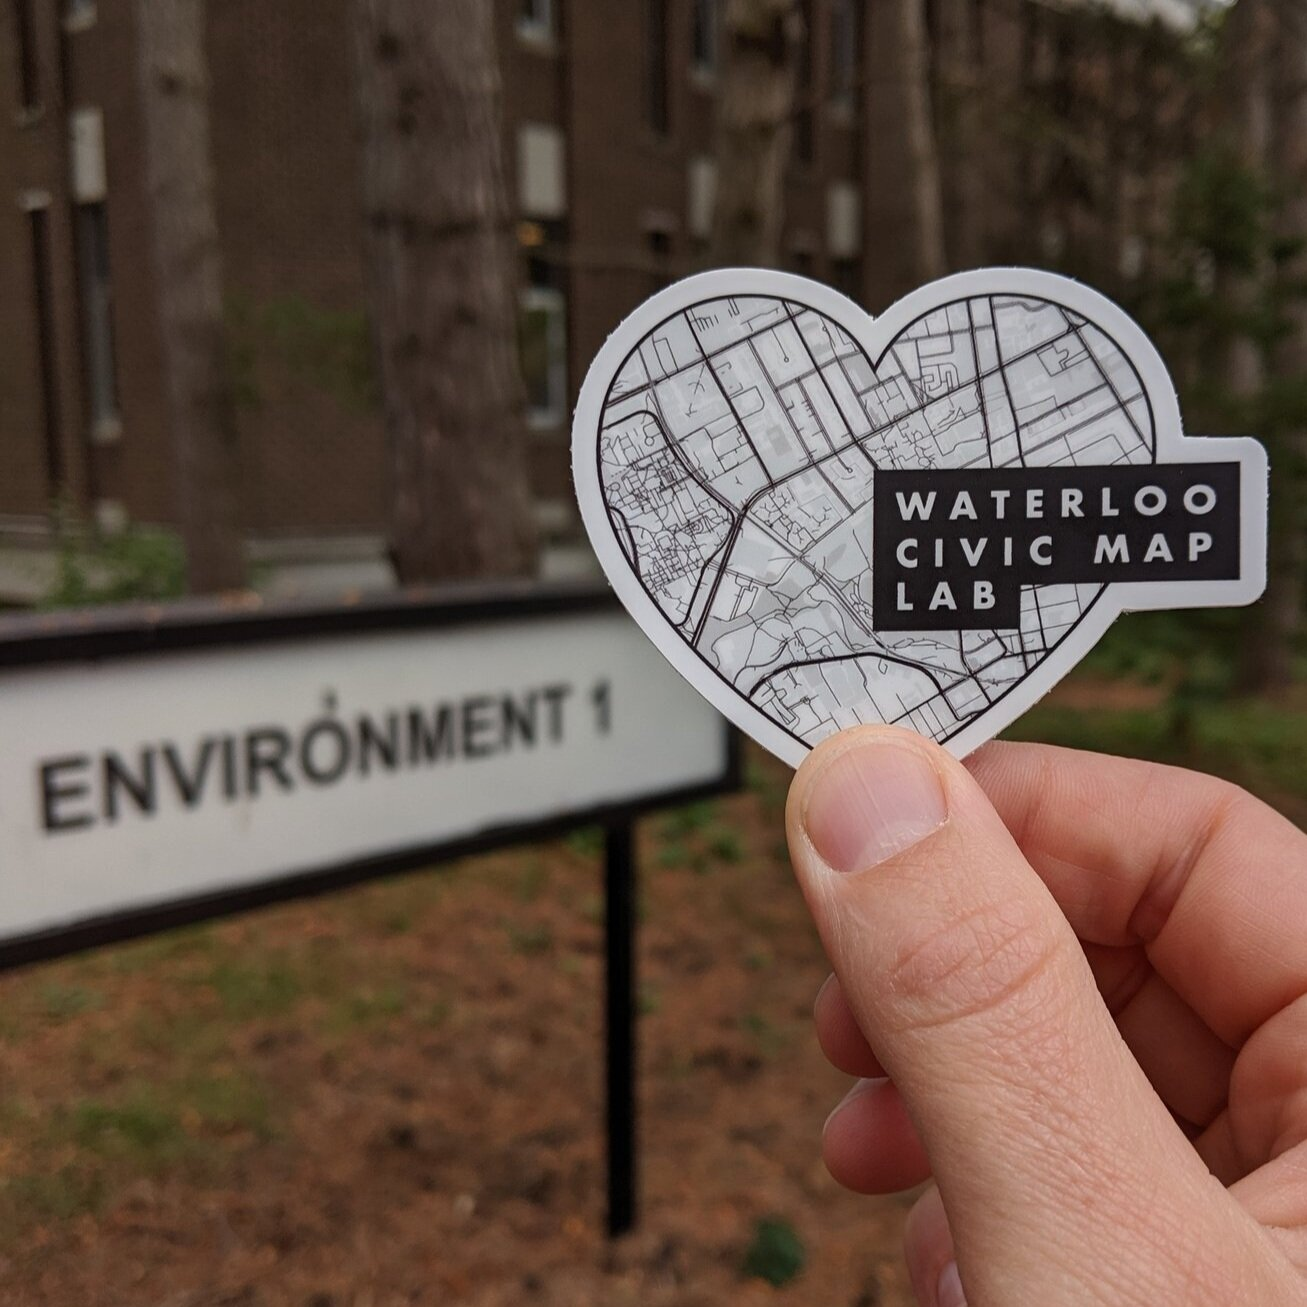 Logo:  Waterloo Civic Map Lab at UWaterloo focusing on developing maps and geospatial data with community impact.